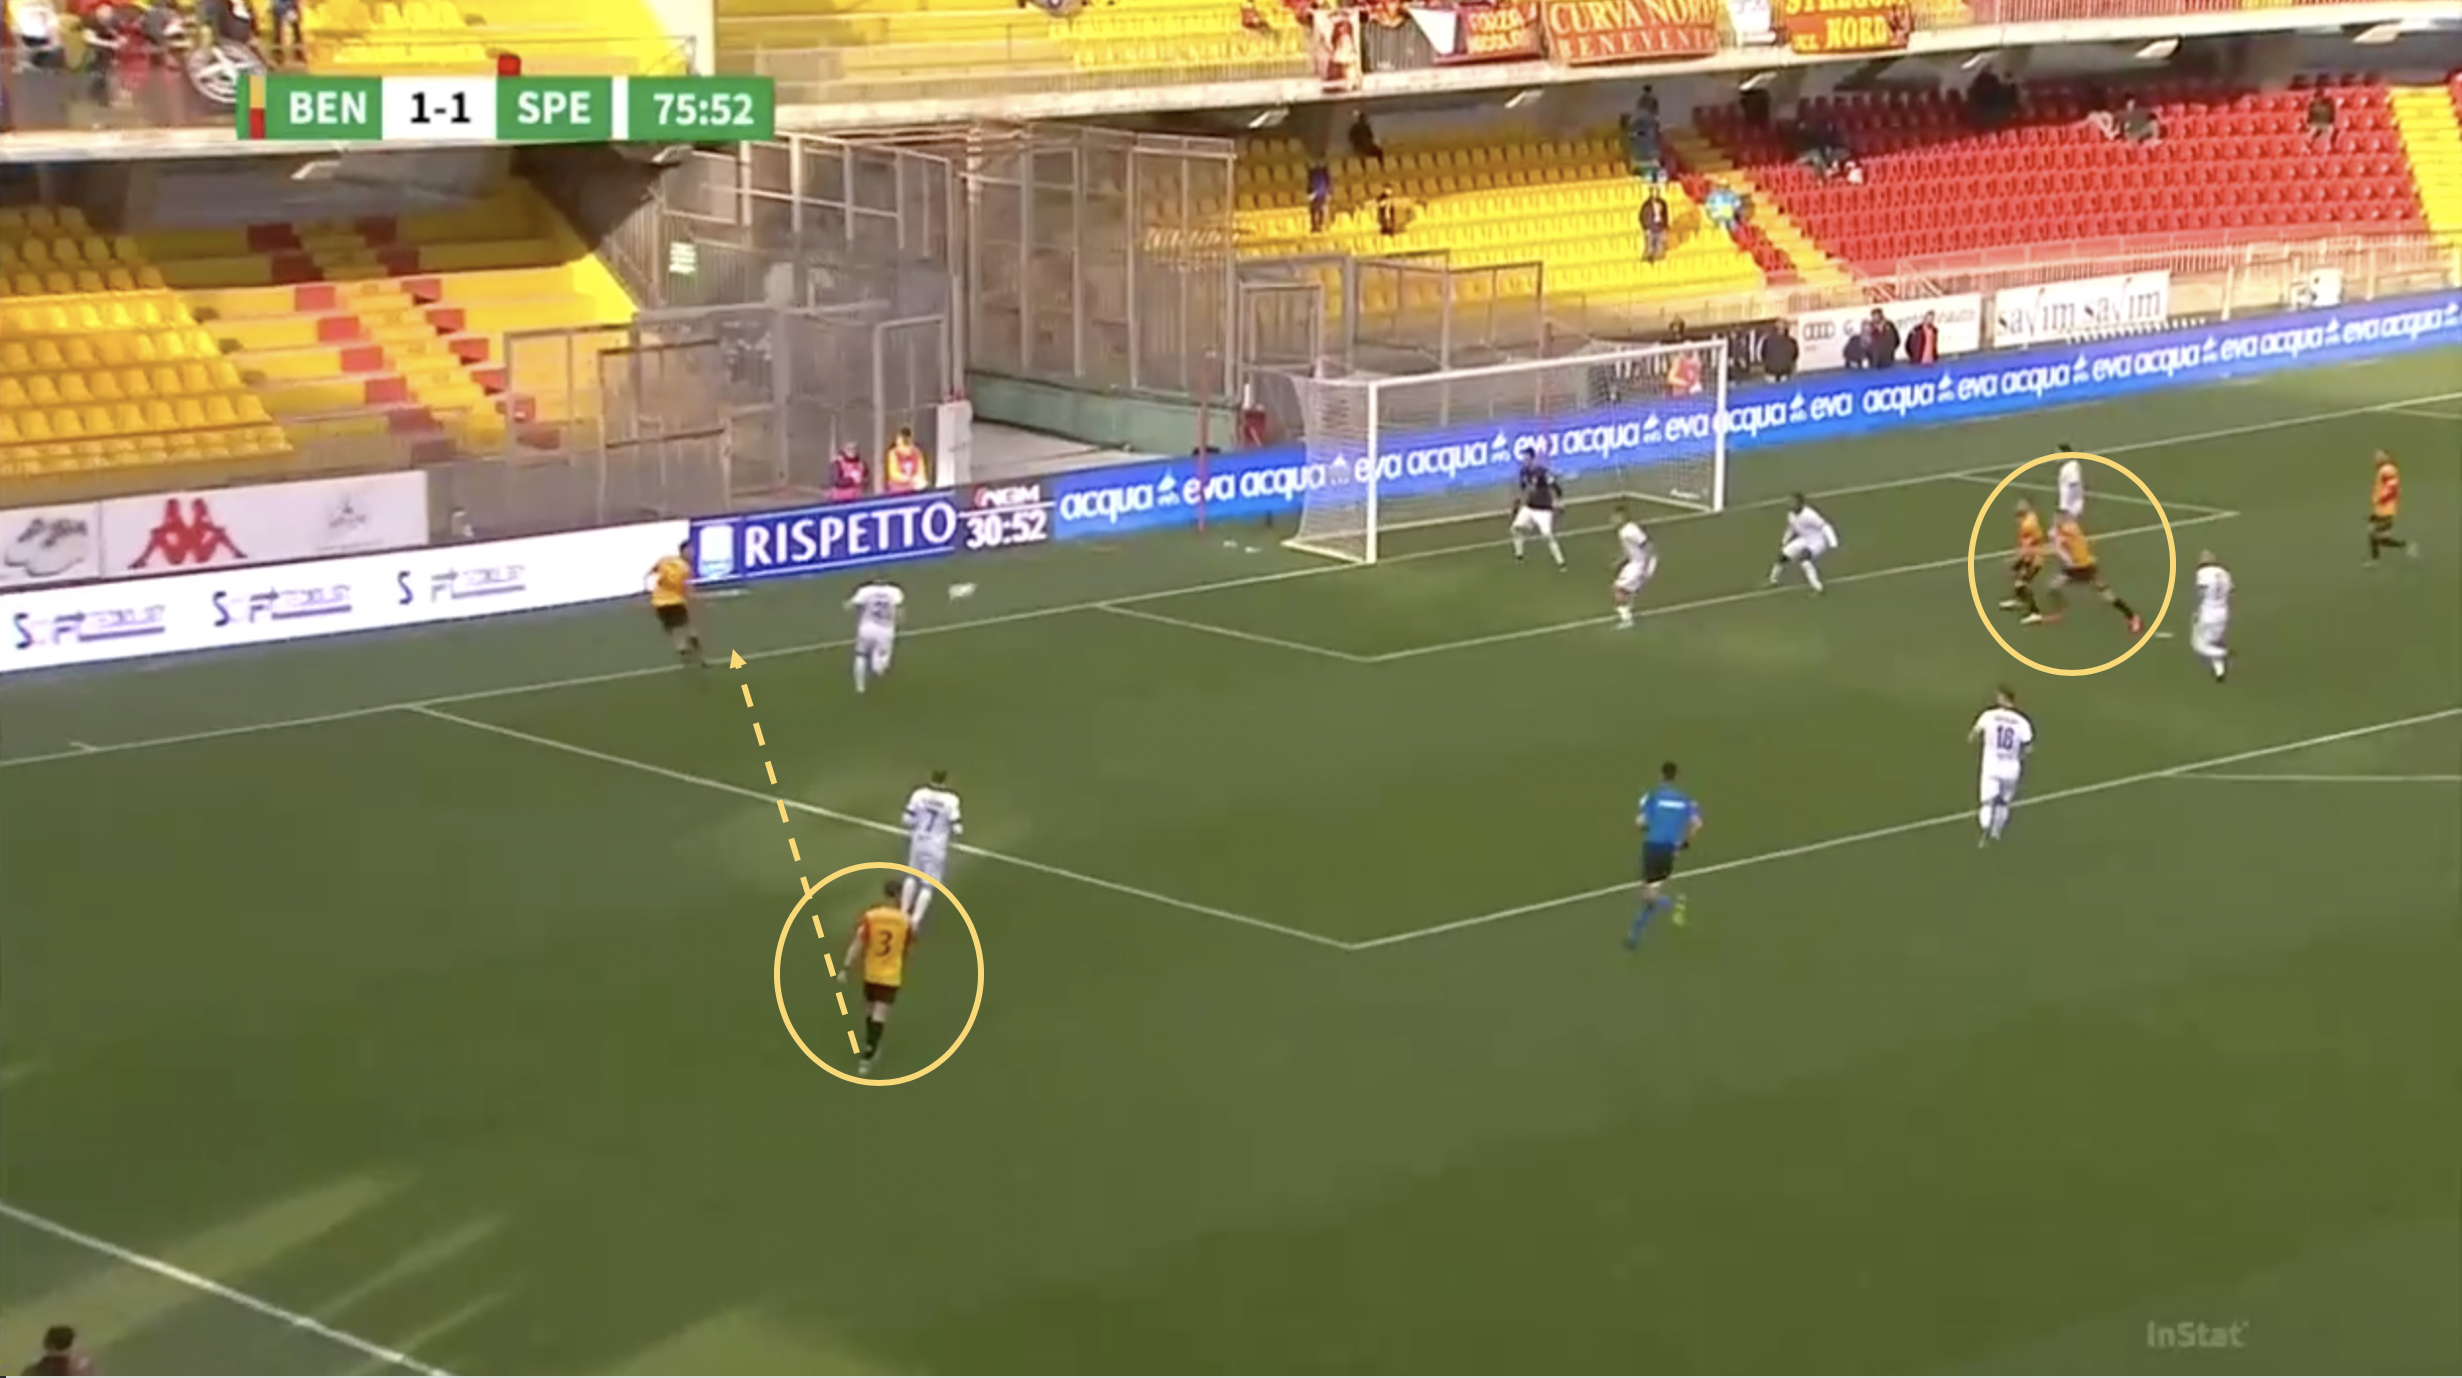 Inzaghi at Benevento, A tactical analysis 2019/2020 – Part One, with the ball + Tactics